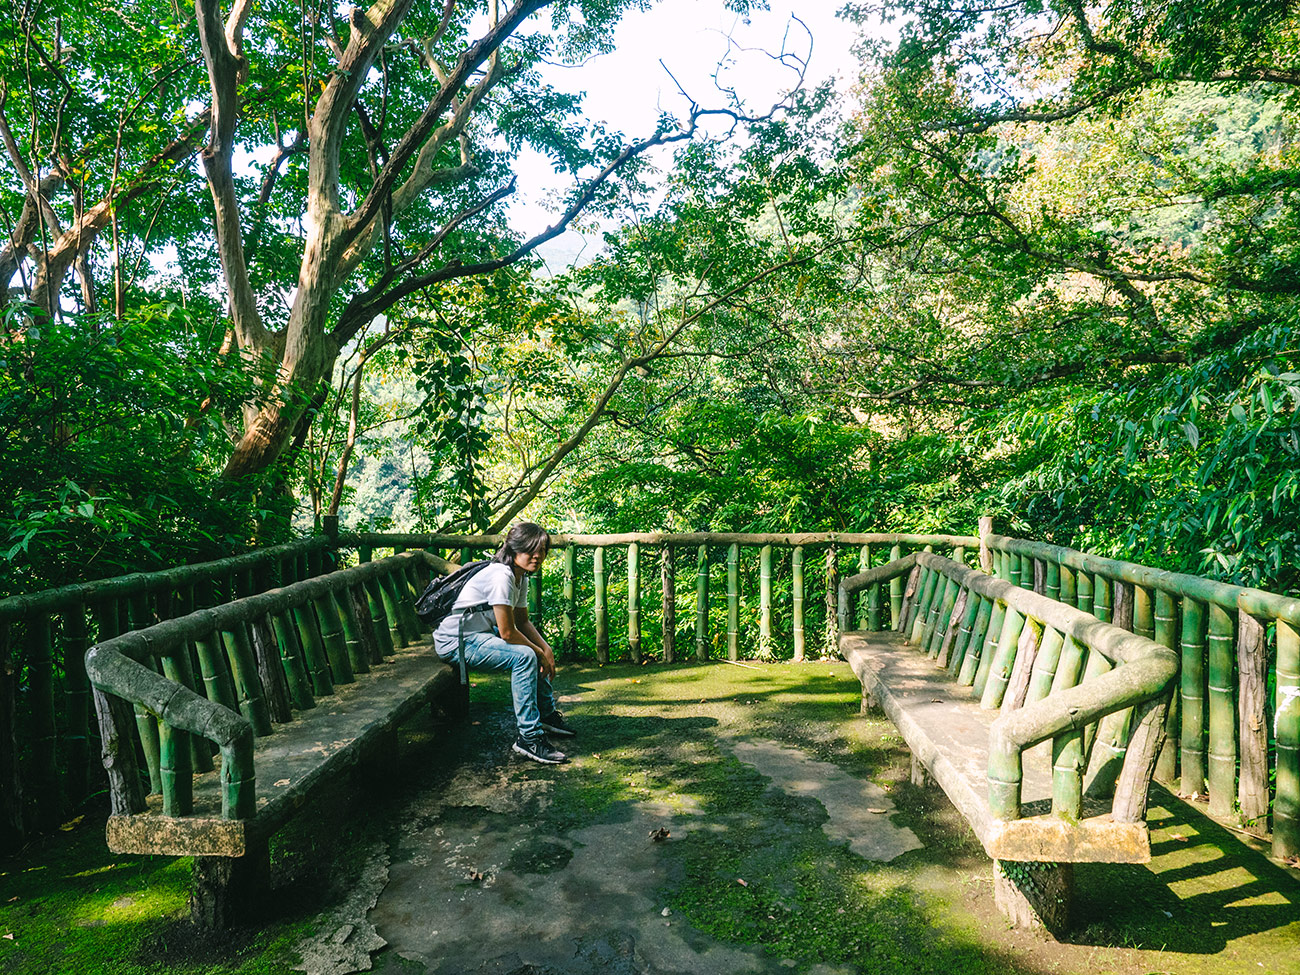 Yangmingshan - Wooden seating area